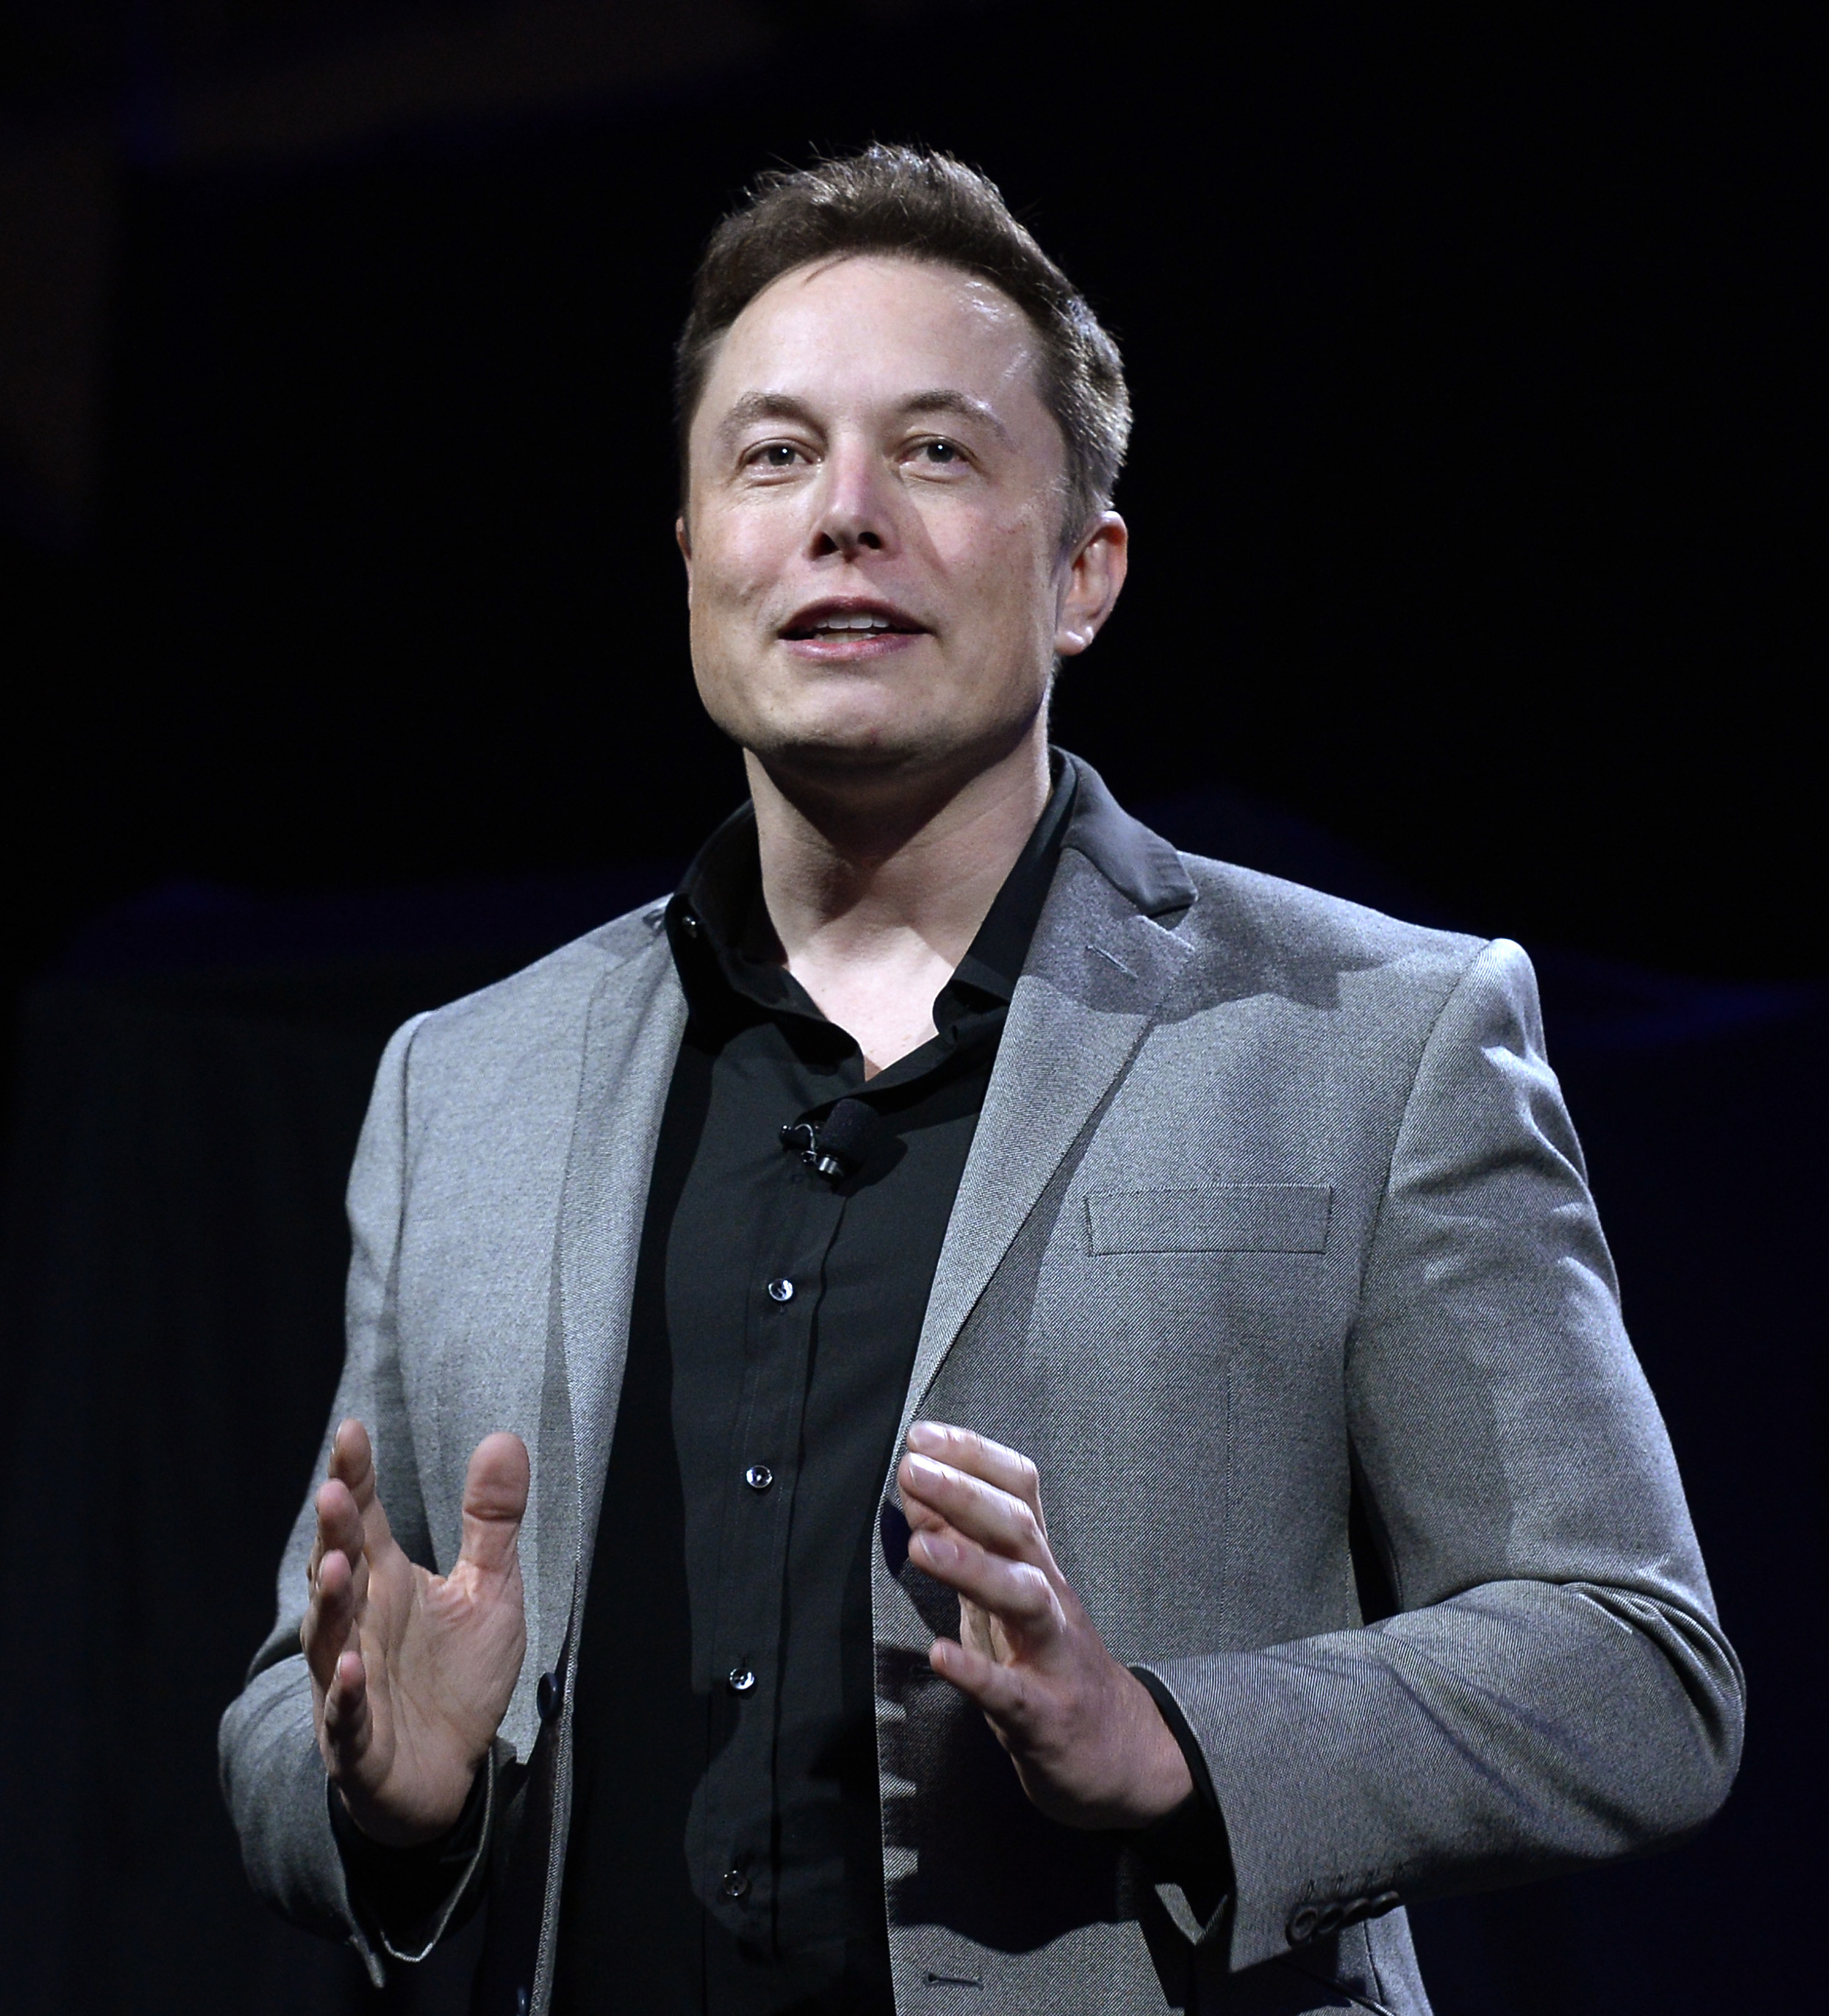 Elon Musk, CEO of Tesla, unveils batteries for homes, businesses, and utilities at Tesla Design Studio April 30, 2015 in Hawthorne, California.